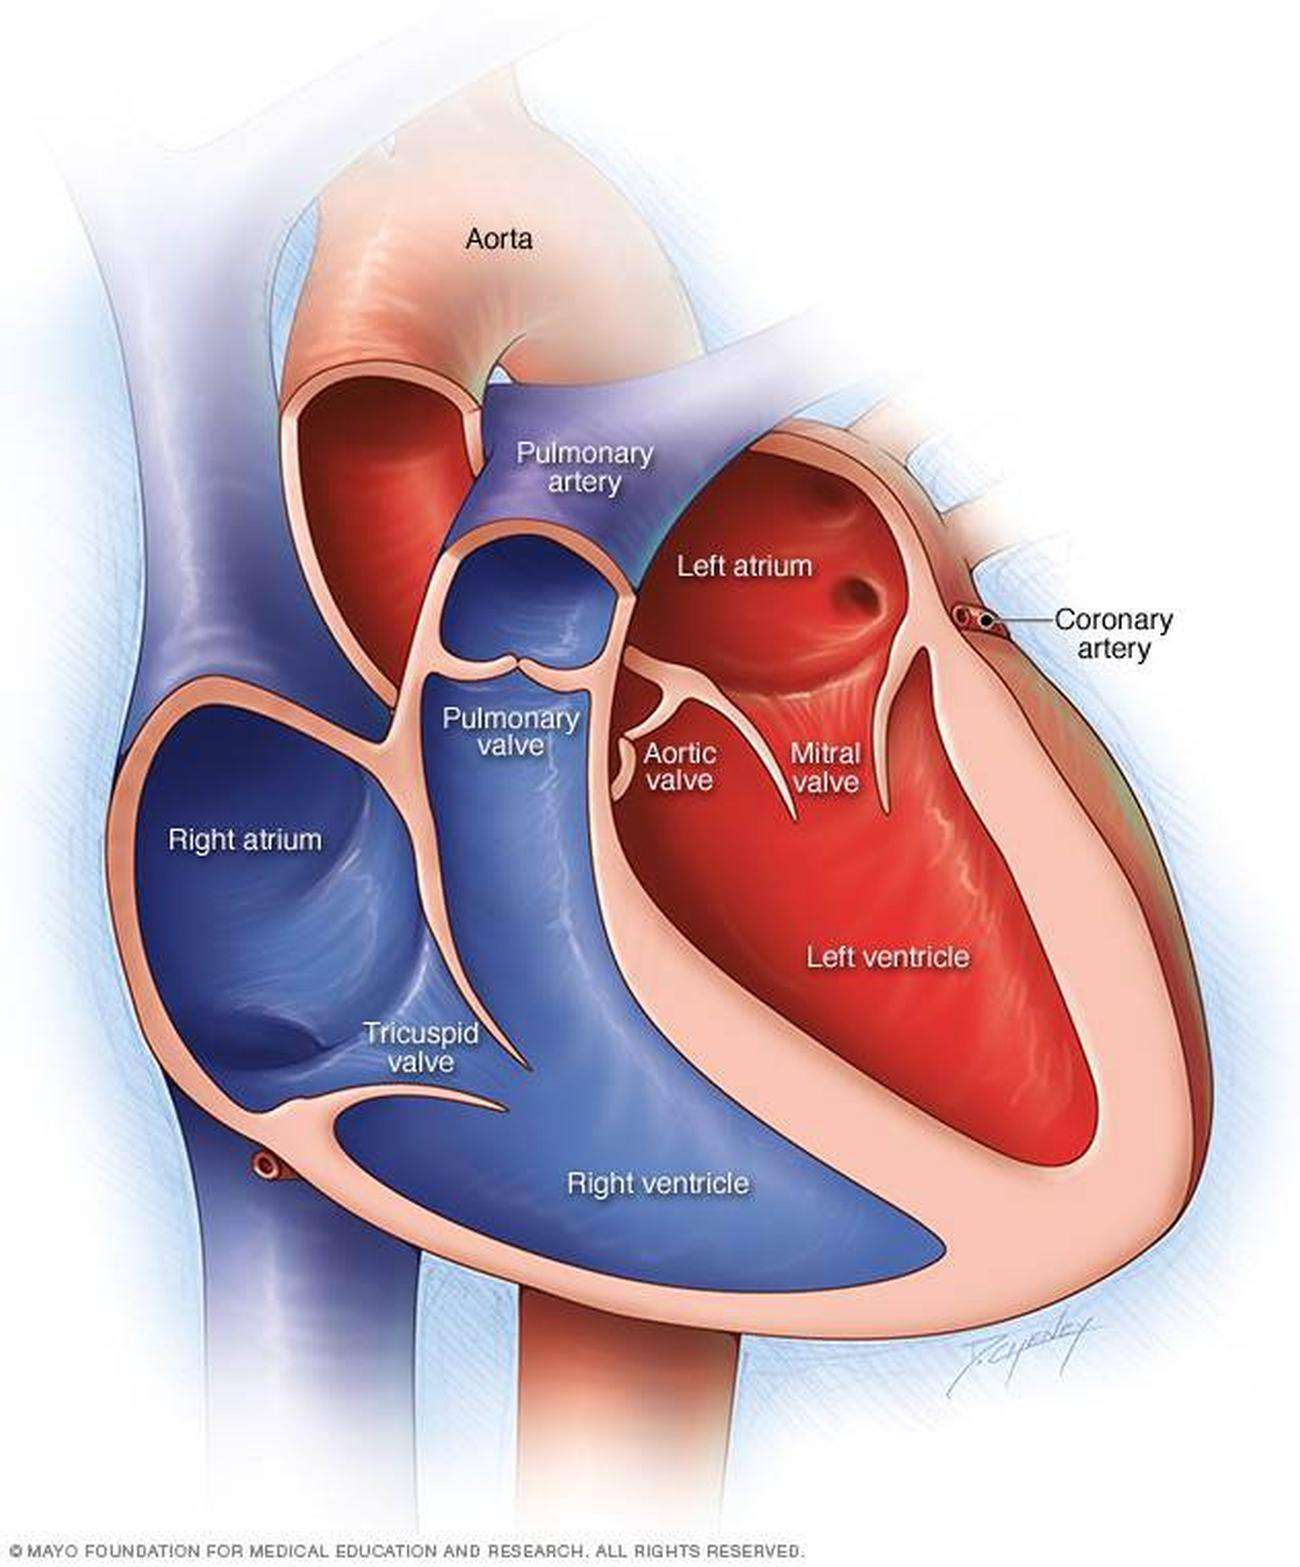 3 chambered heart diagram database architecture pictures of chambers the